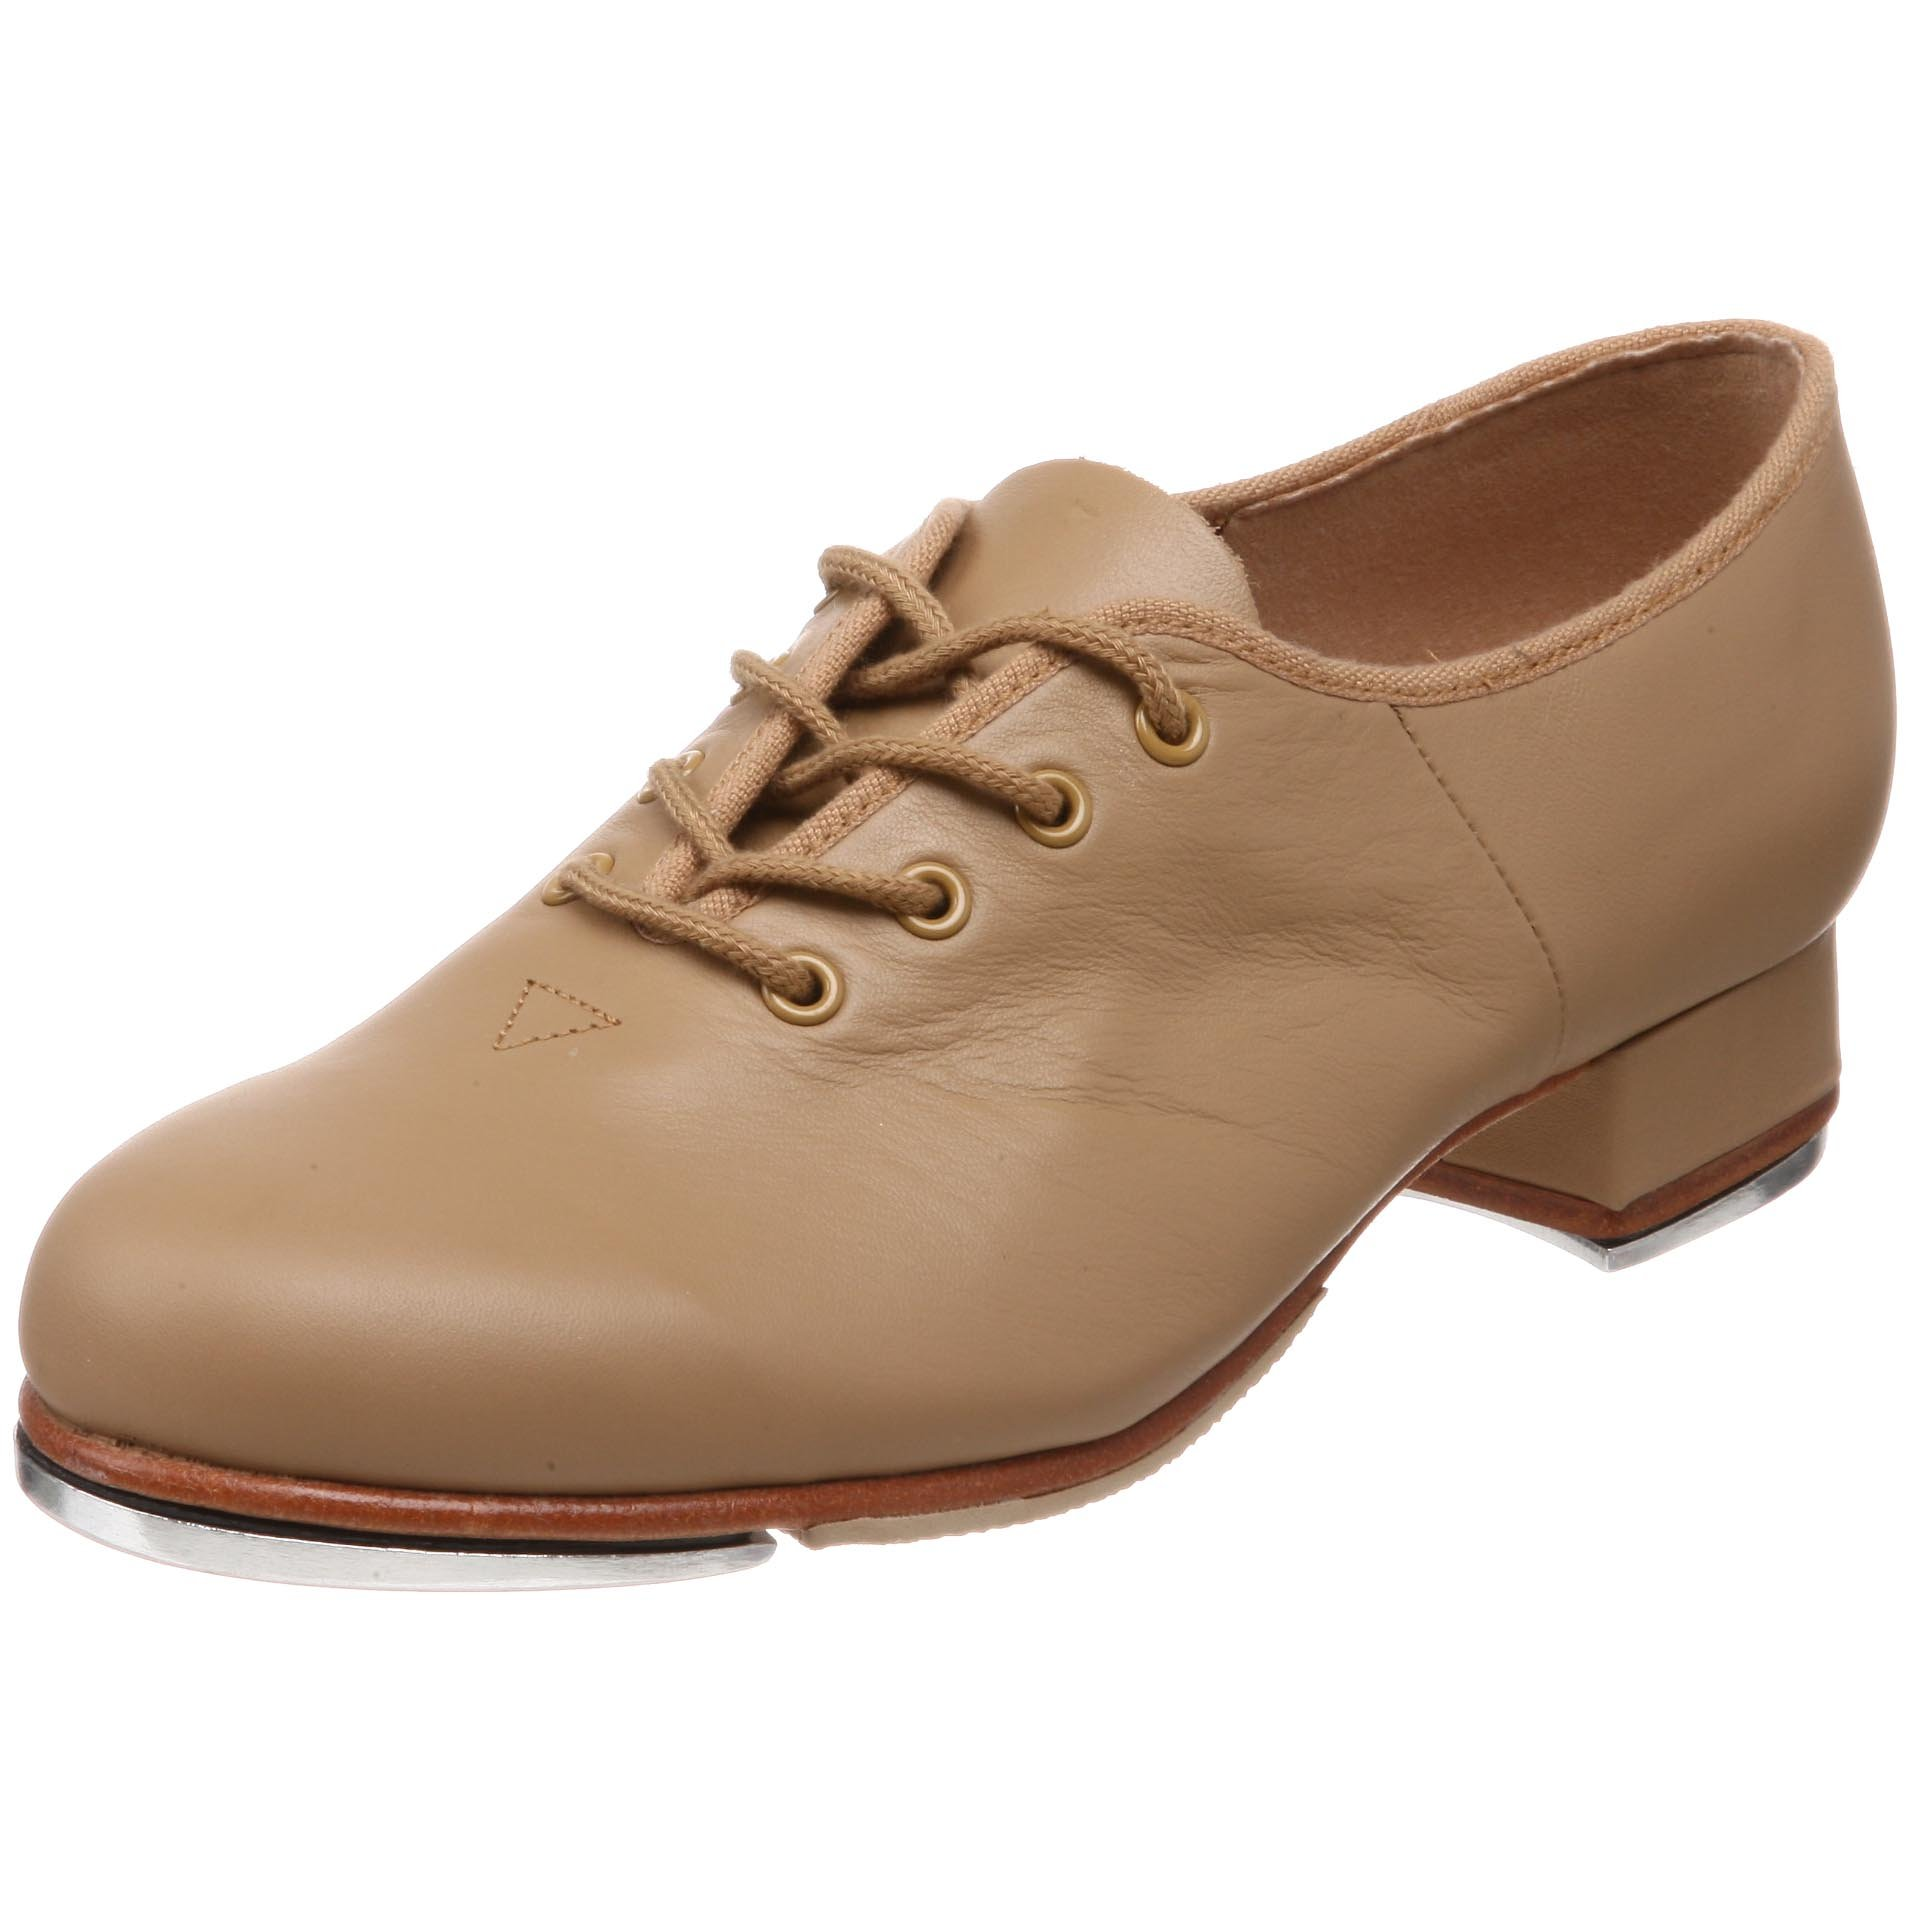 Bloch Dance Women's Jazz Tap Tap Shoe, Tan, 12 X(Medium) US by Bloch